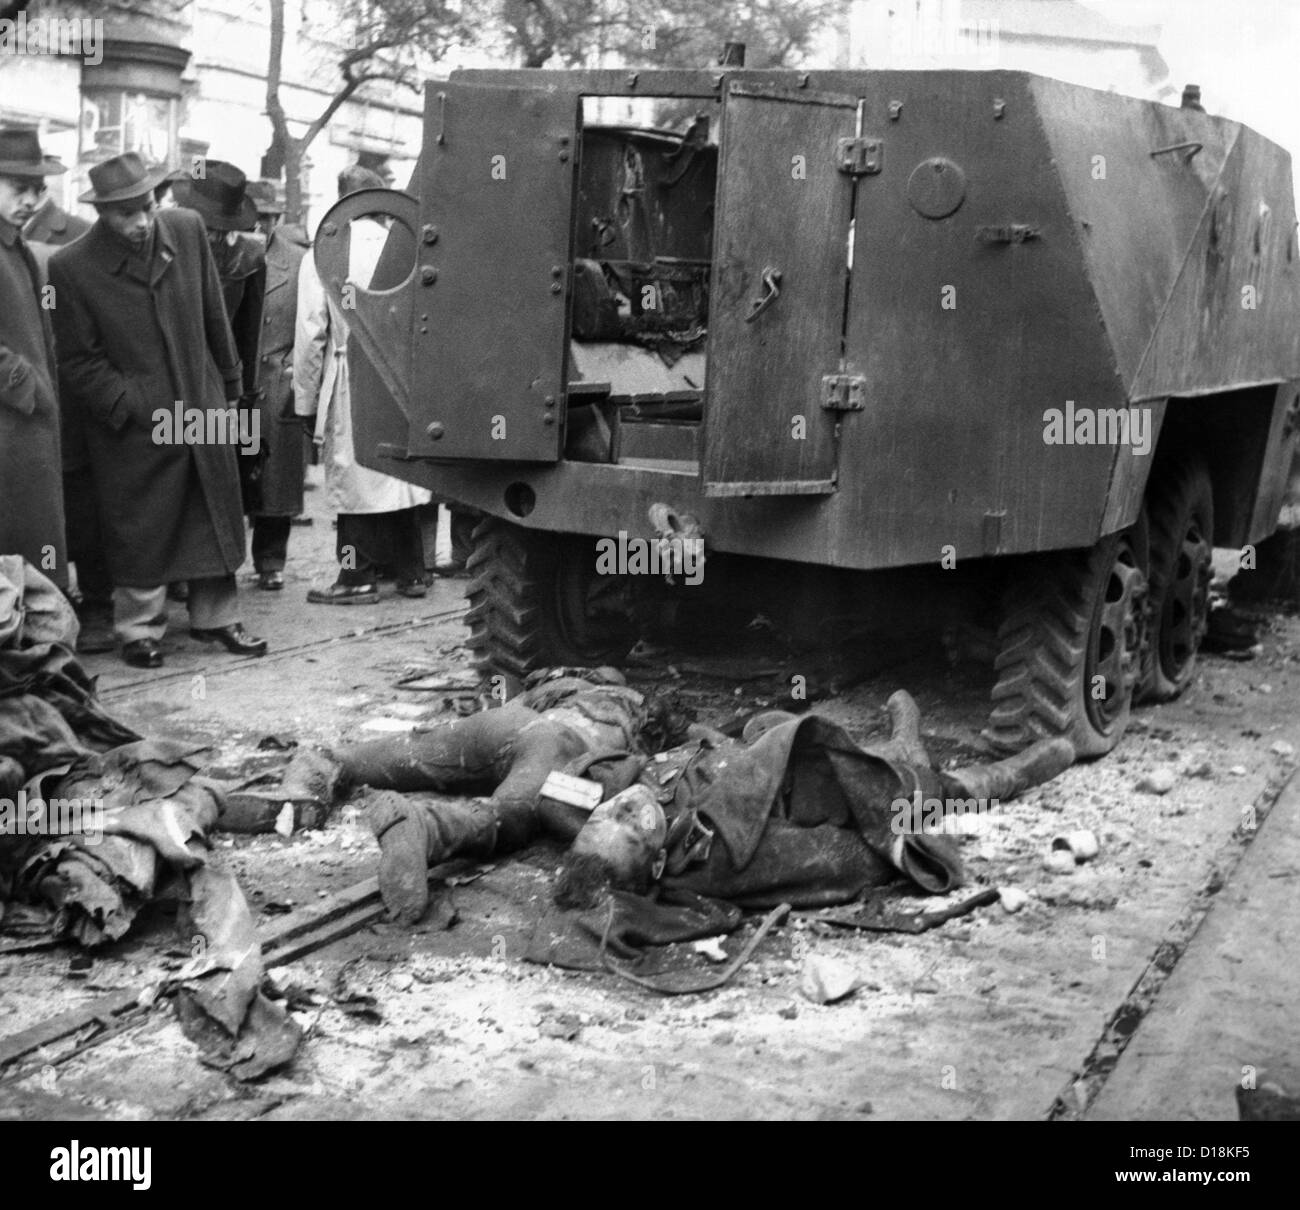 The 1956 Hungarian Uprising. The bodies of two Russian soldiers lying  beside their wrecked armored